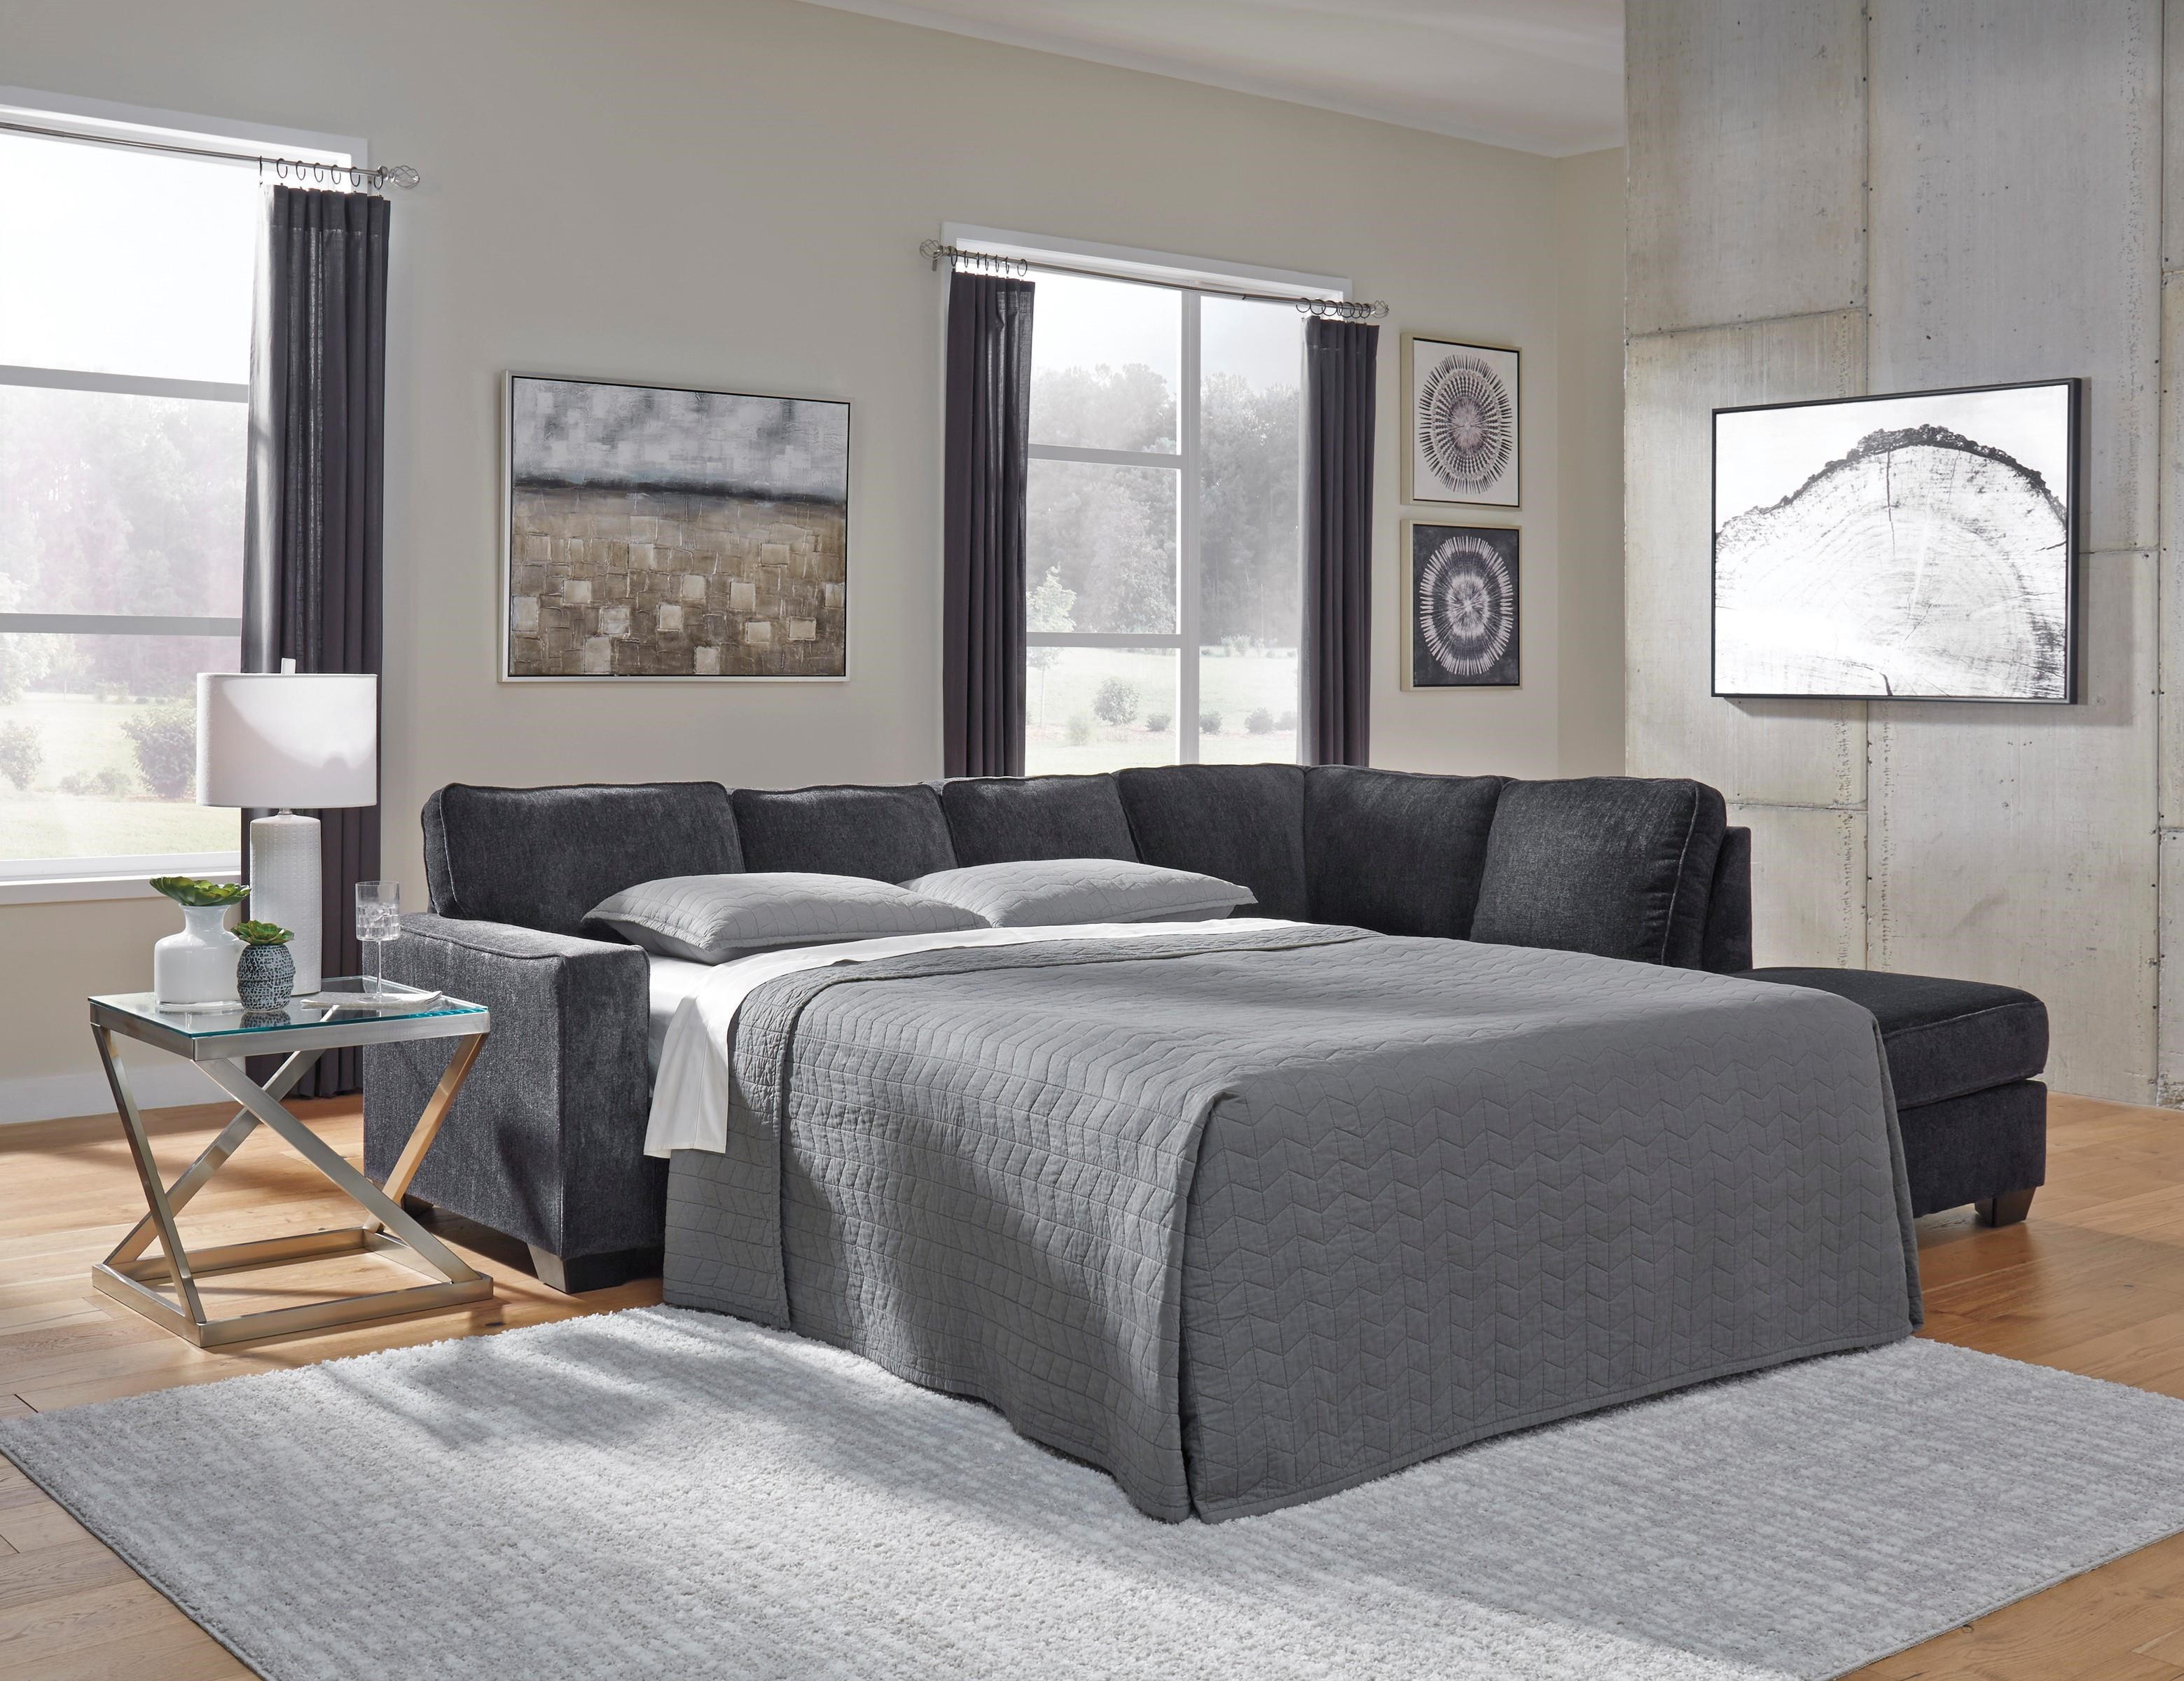 2 PC Sleeper Sectional and Chair Set